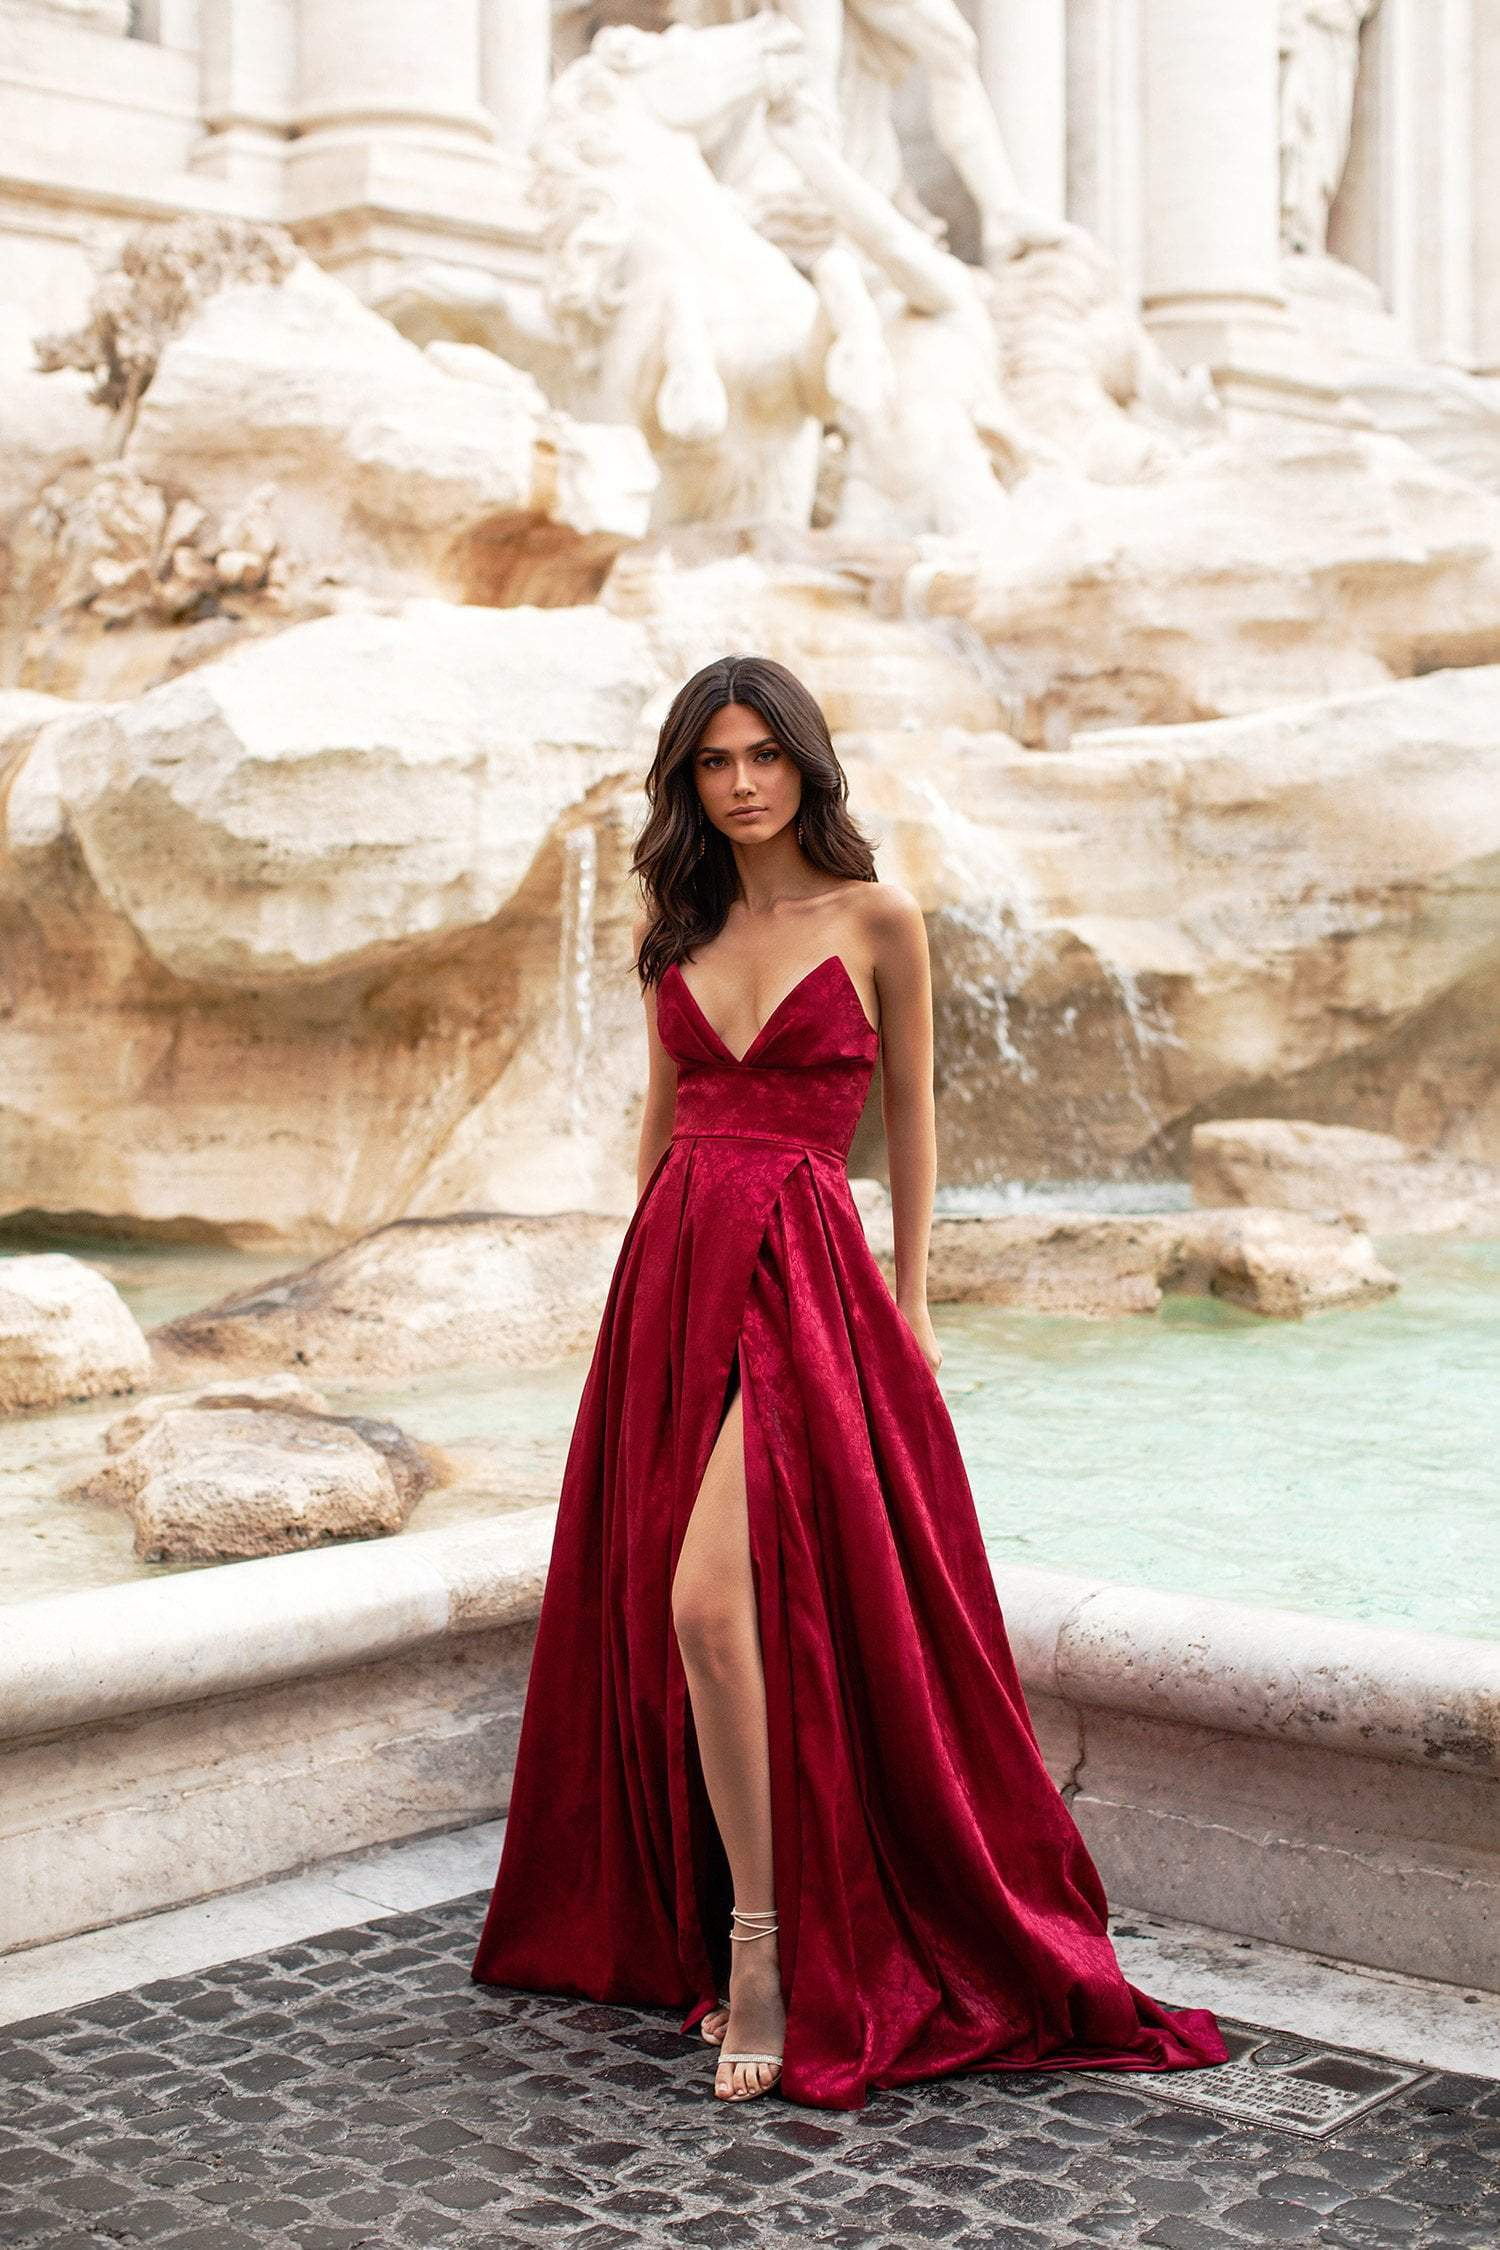 Terina - Jacquard Wine Red Strapless A-line Gown with Side Slit